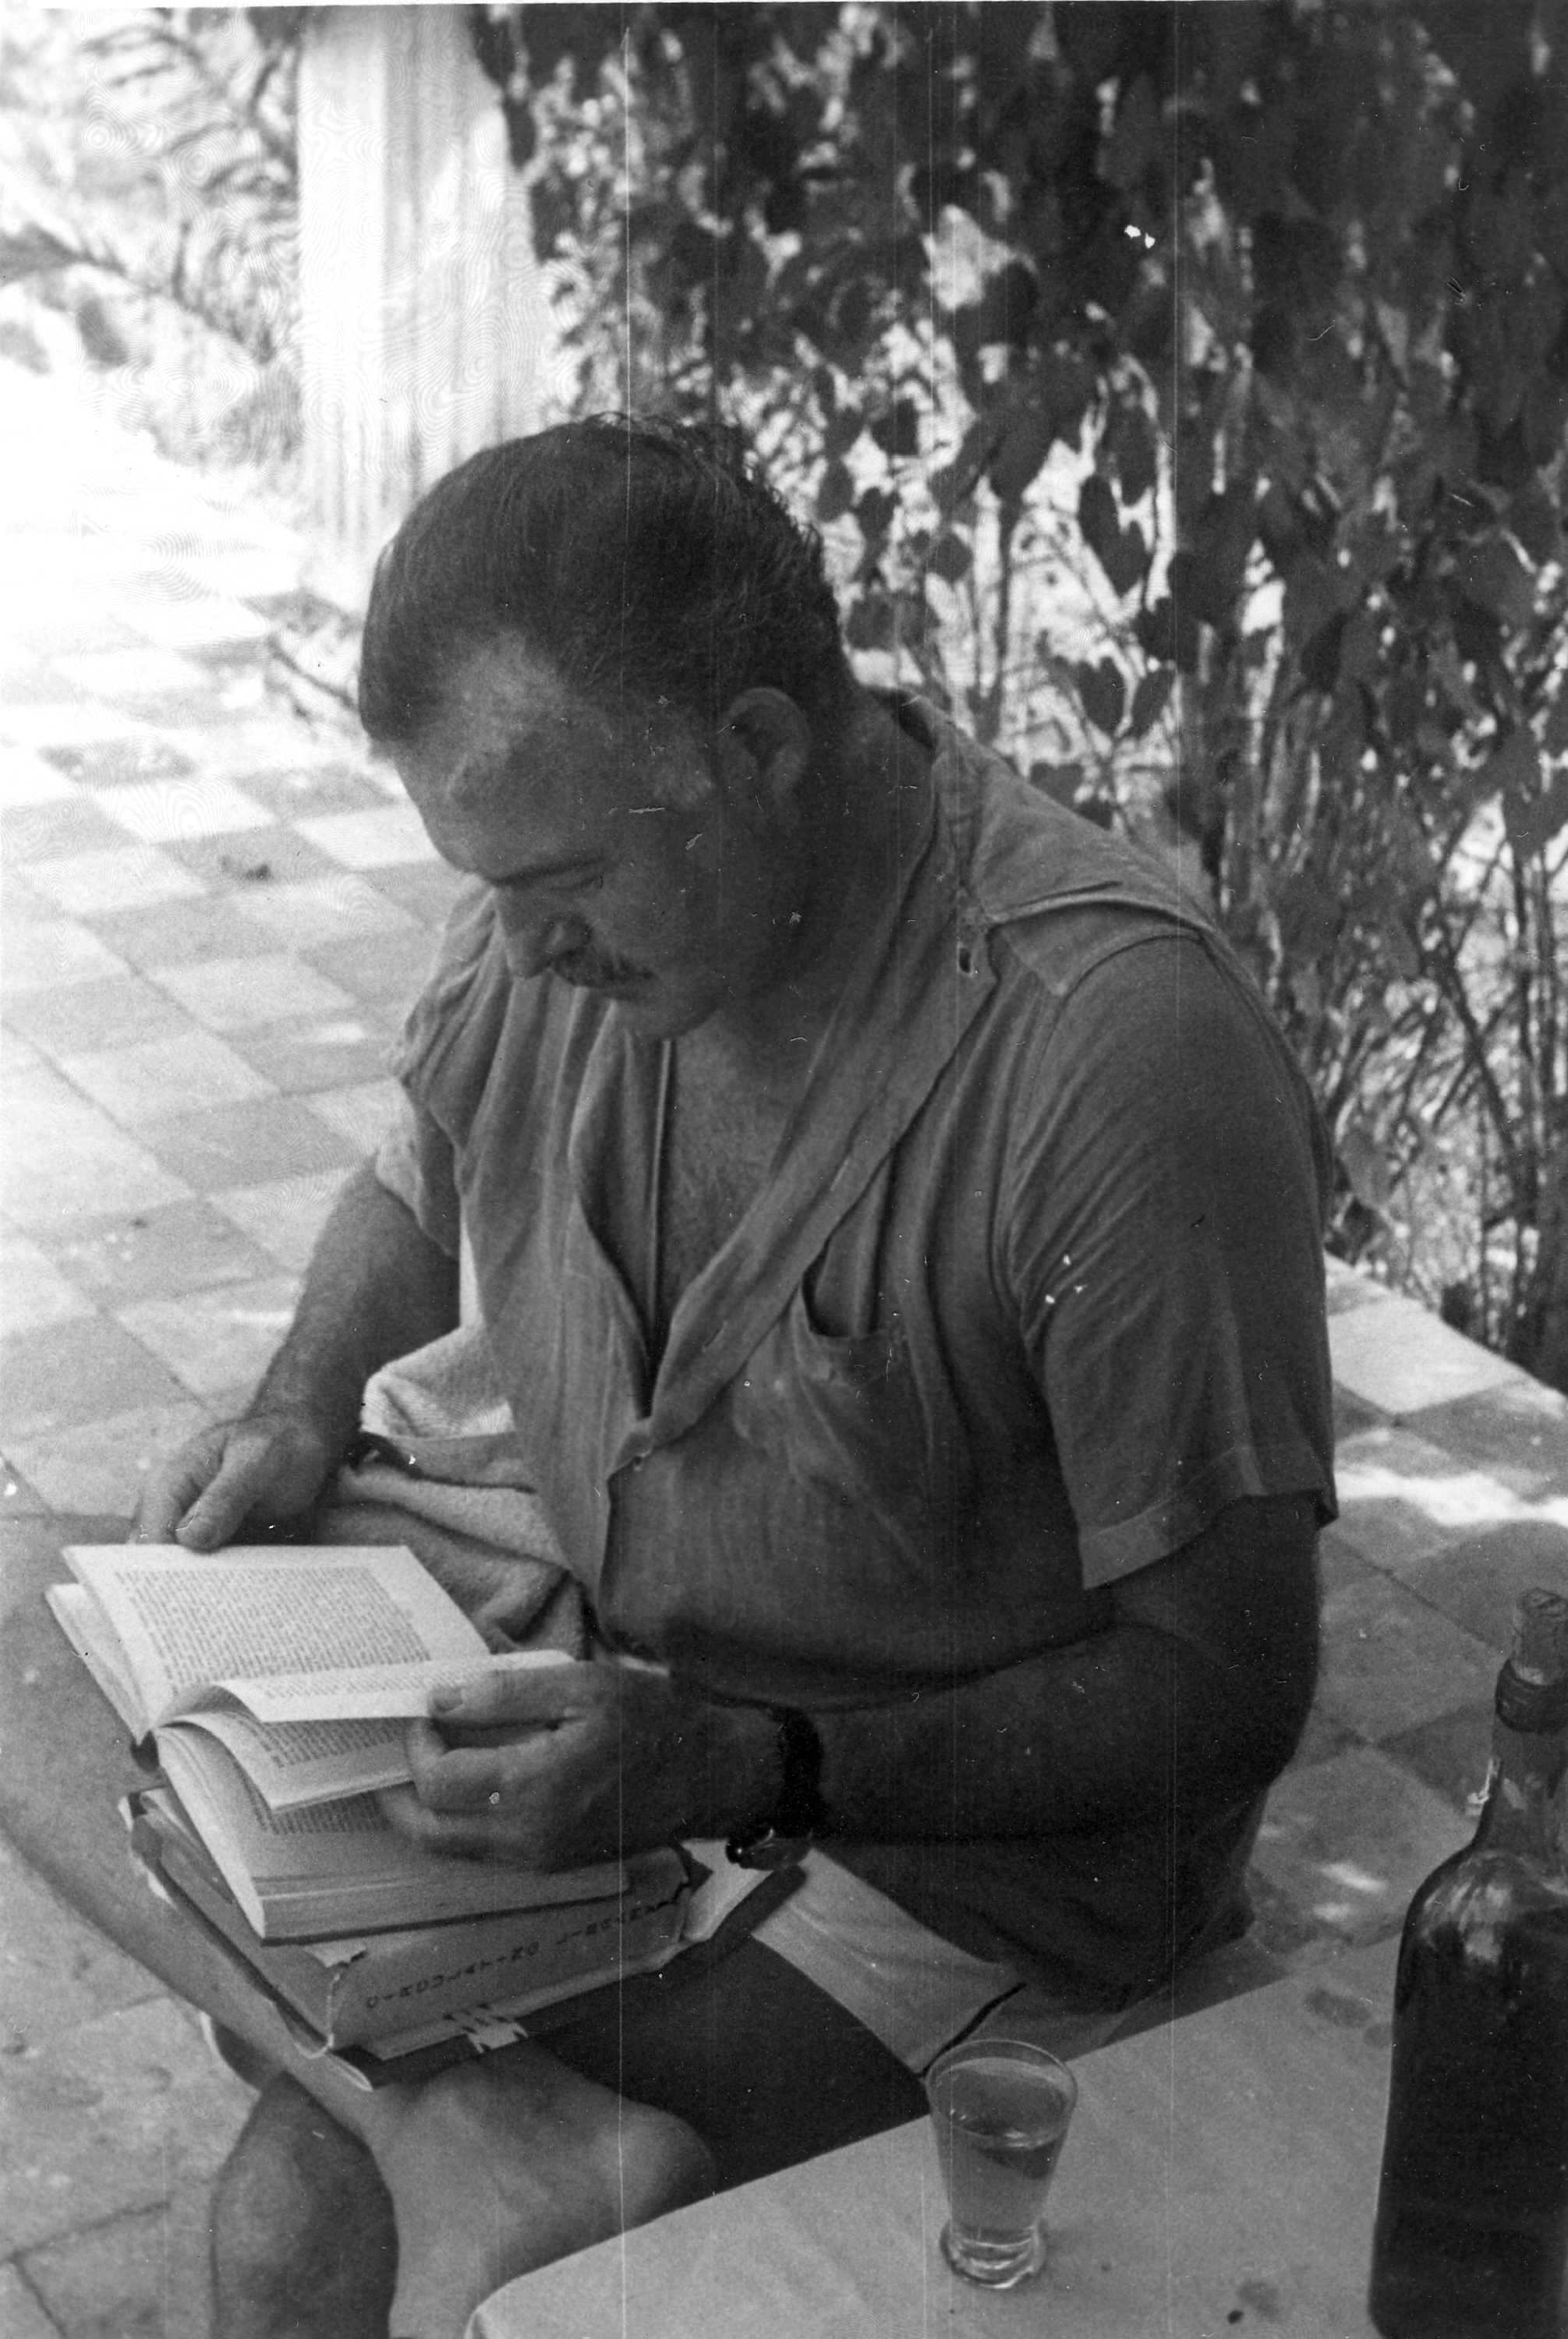 Ernest Hemingway reading outside his home, Finca Vigia, San Francisco de Paula, Cuba.